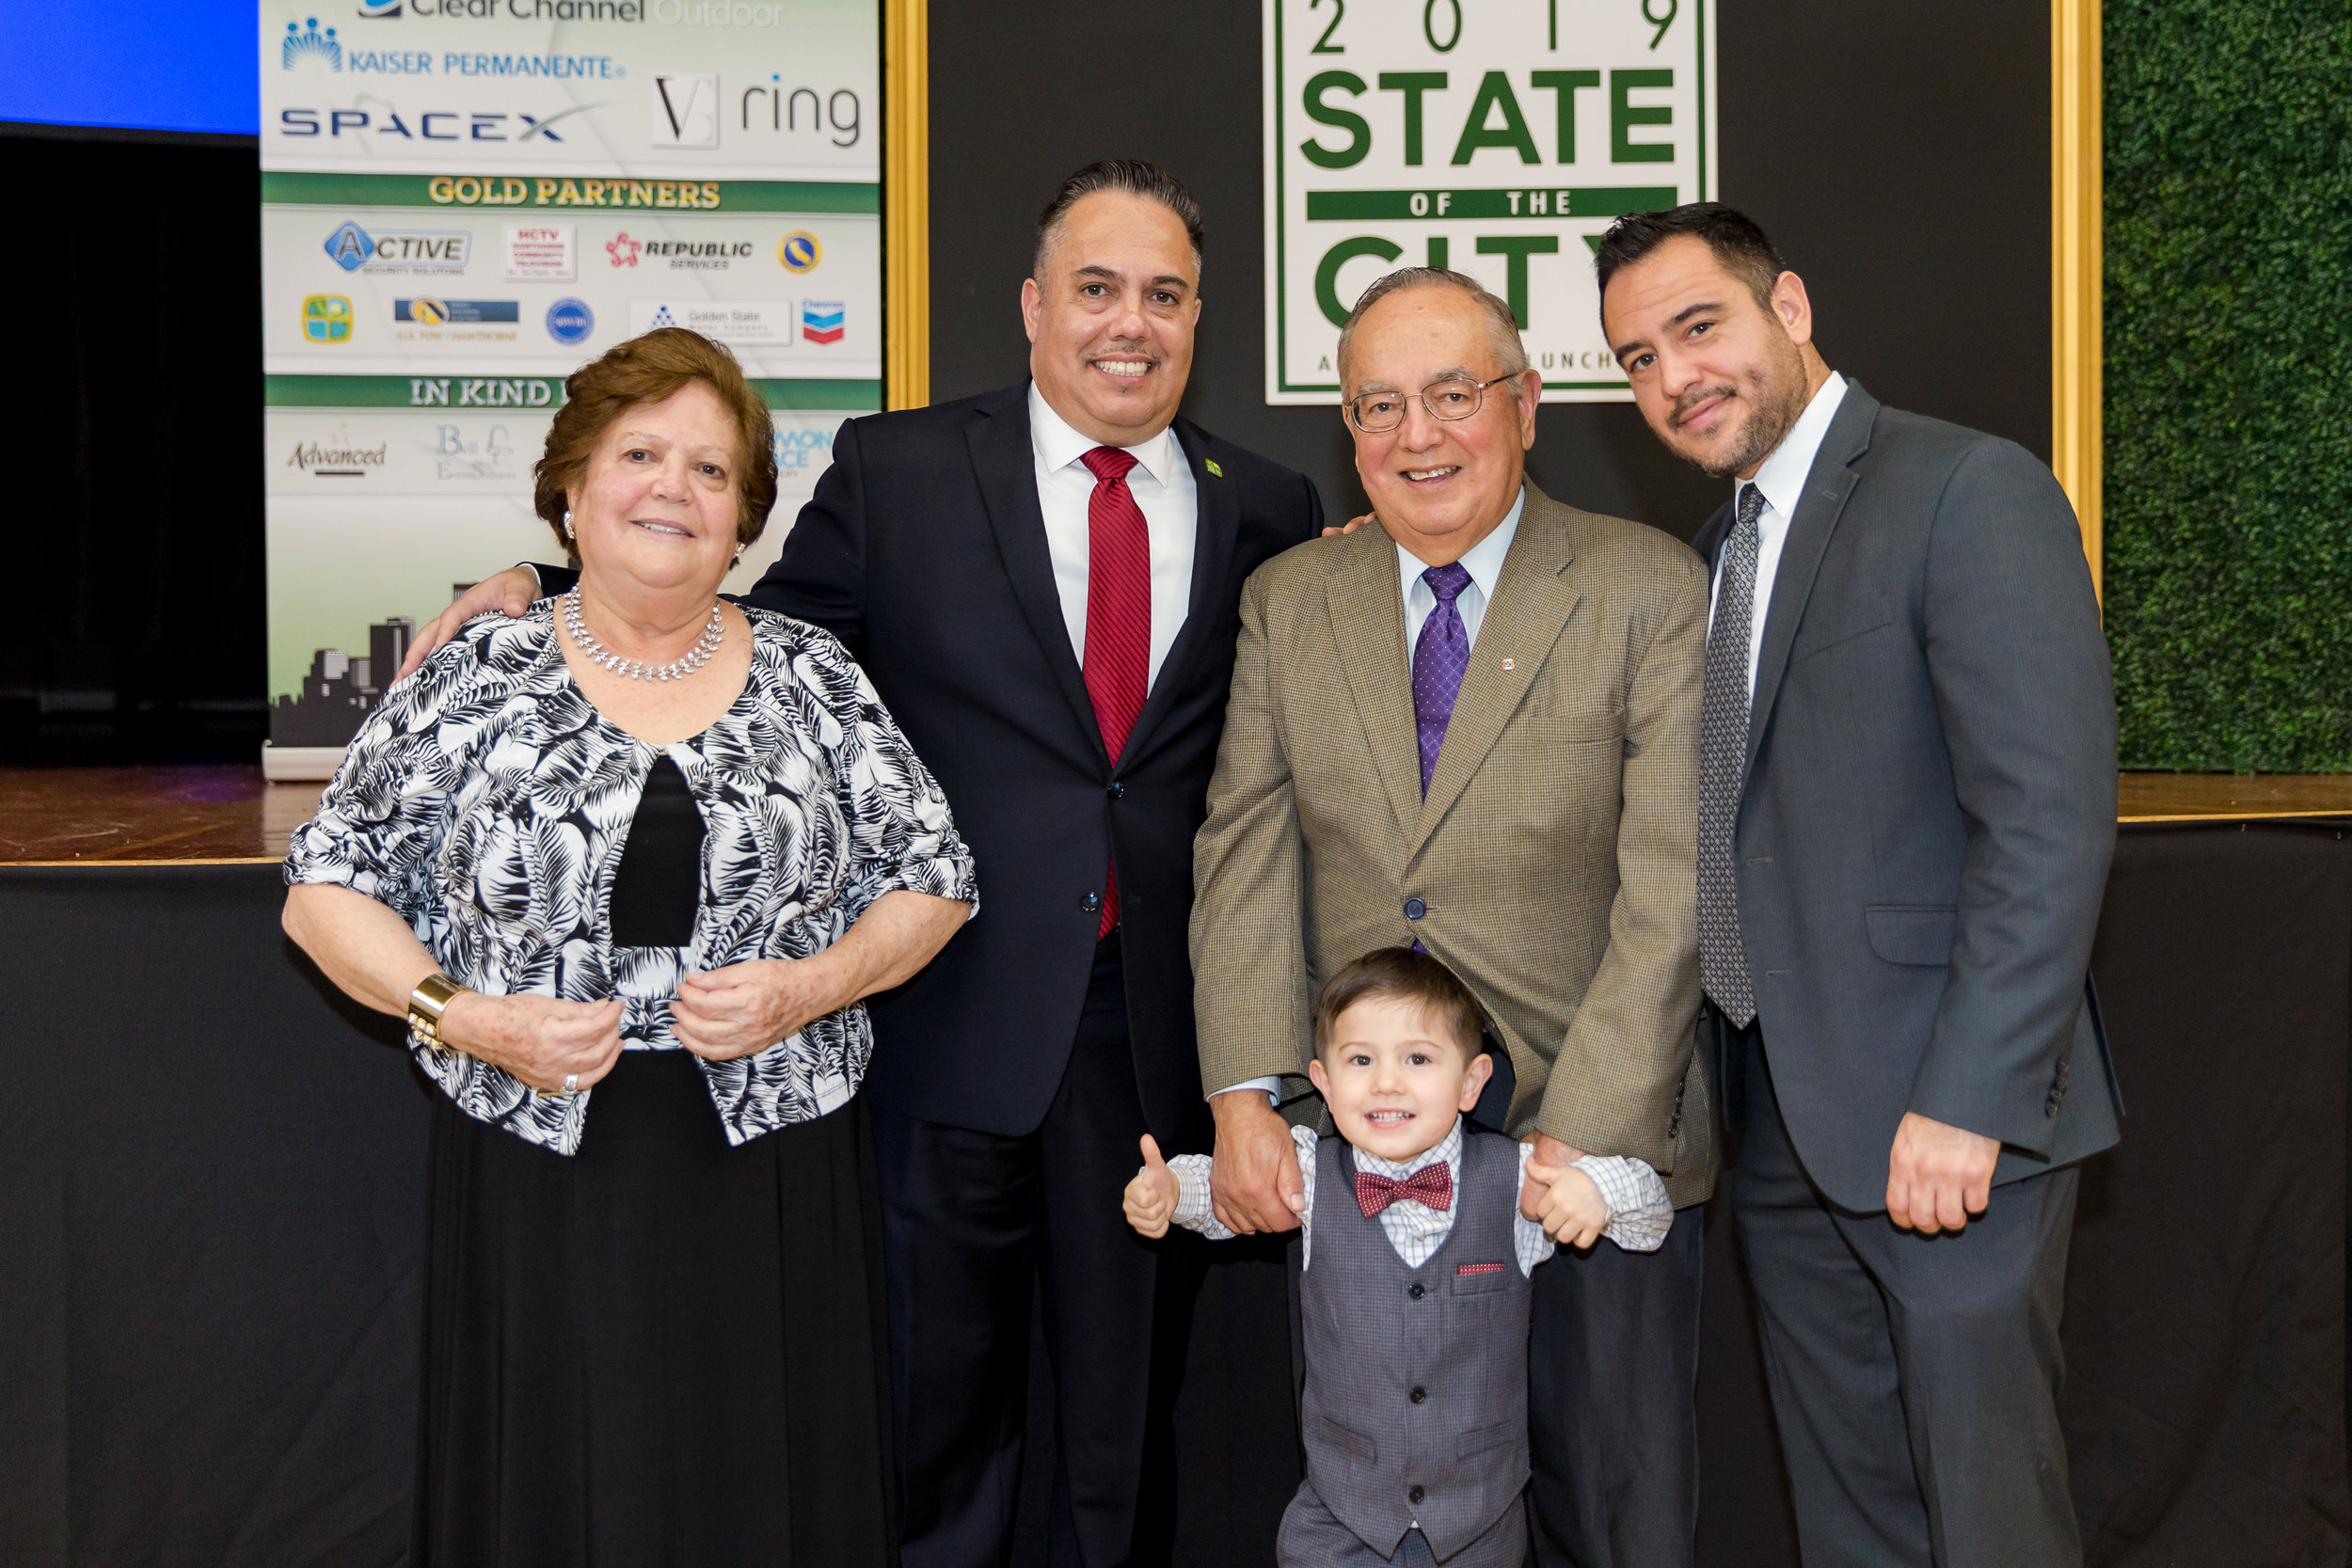 Mayor Vargas and Guests